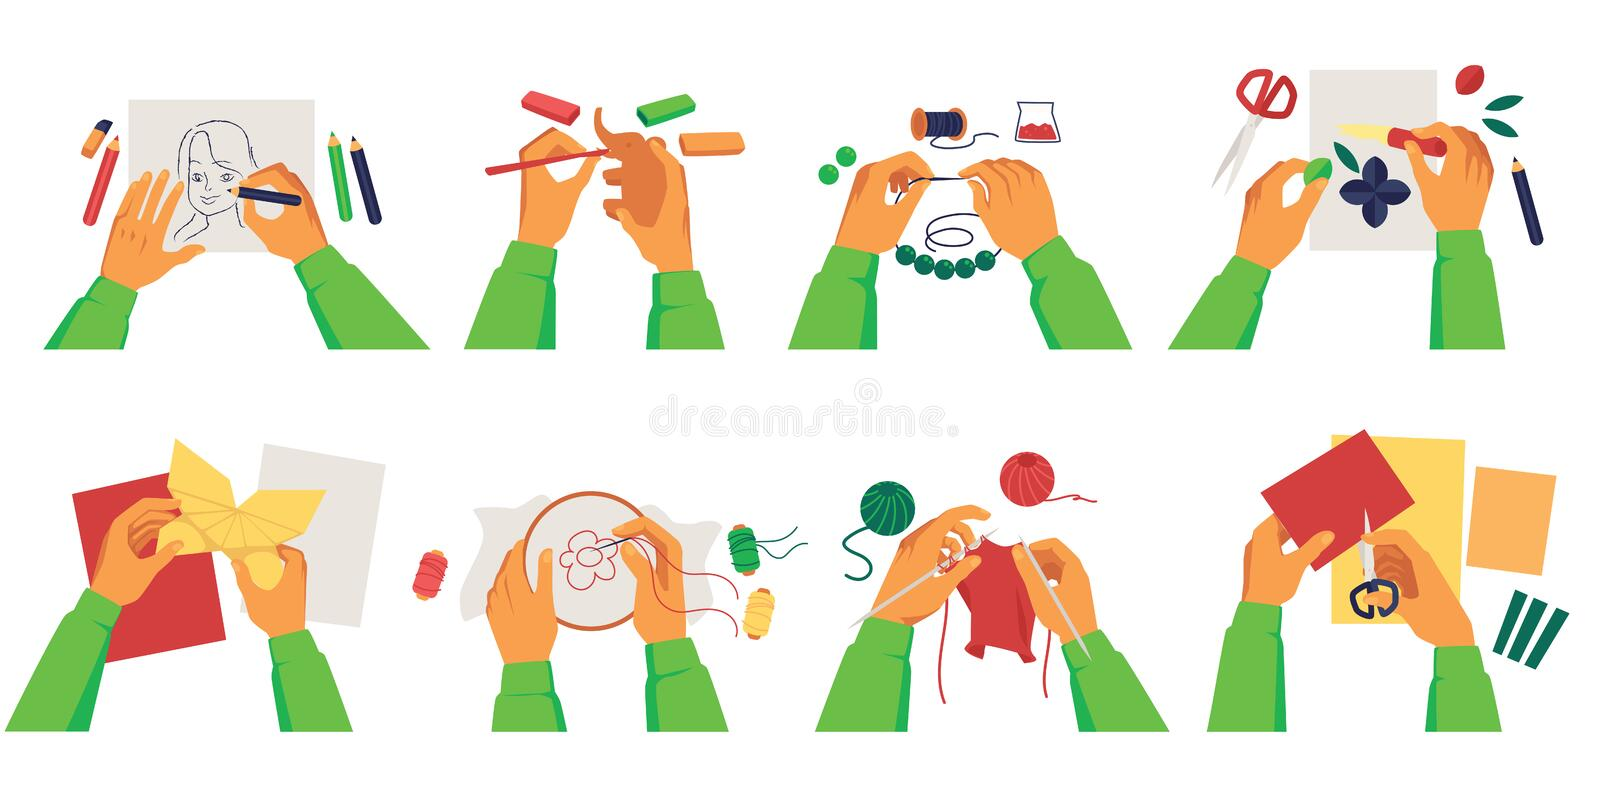 Set of person hands making diy crafts of various creative hobbies cartoon style stock illustration